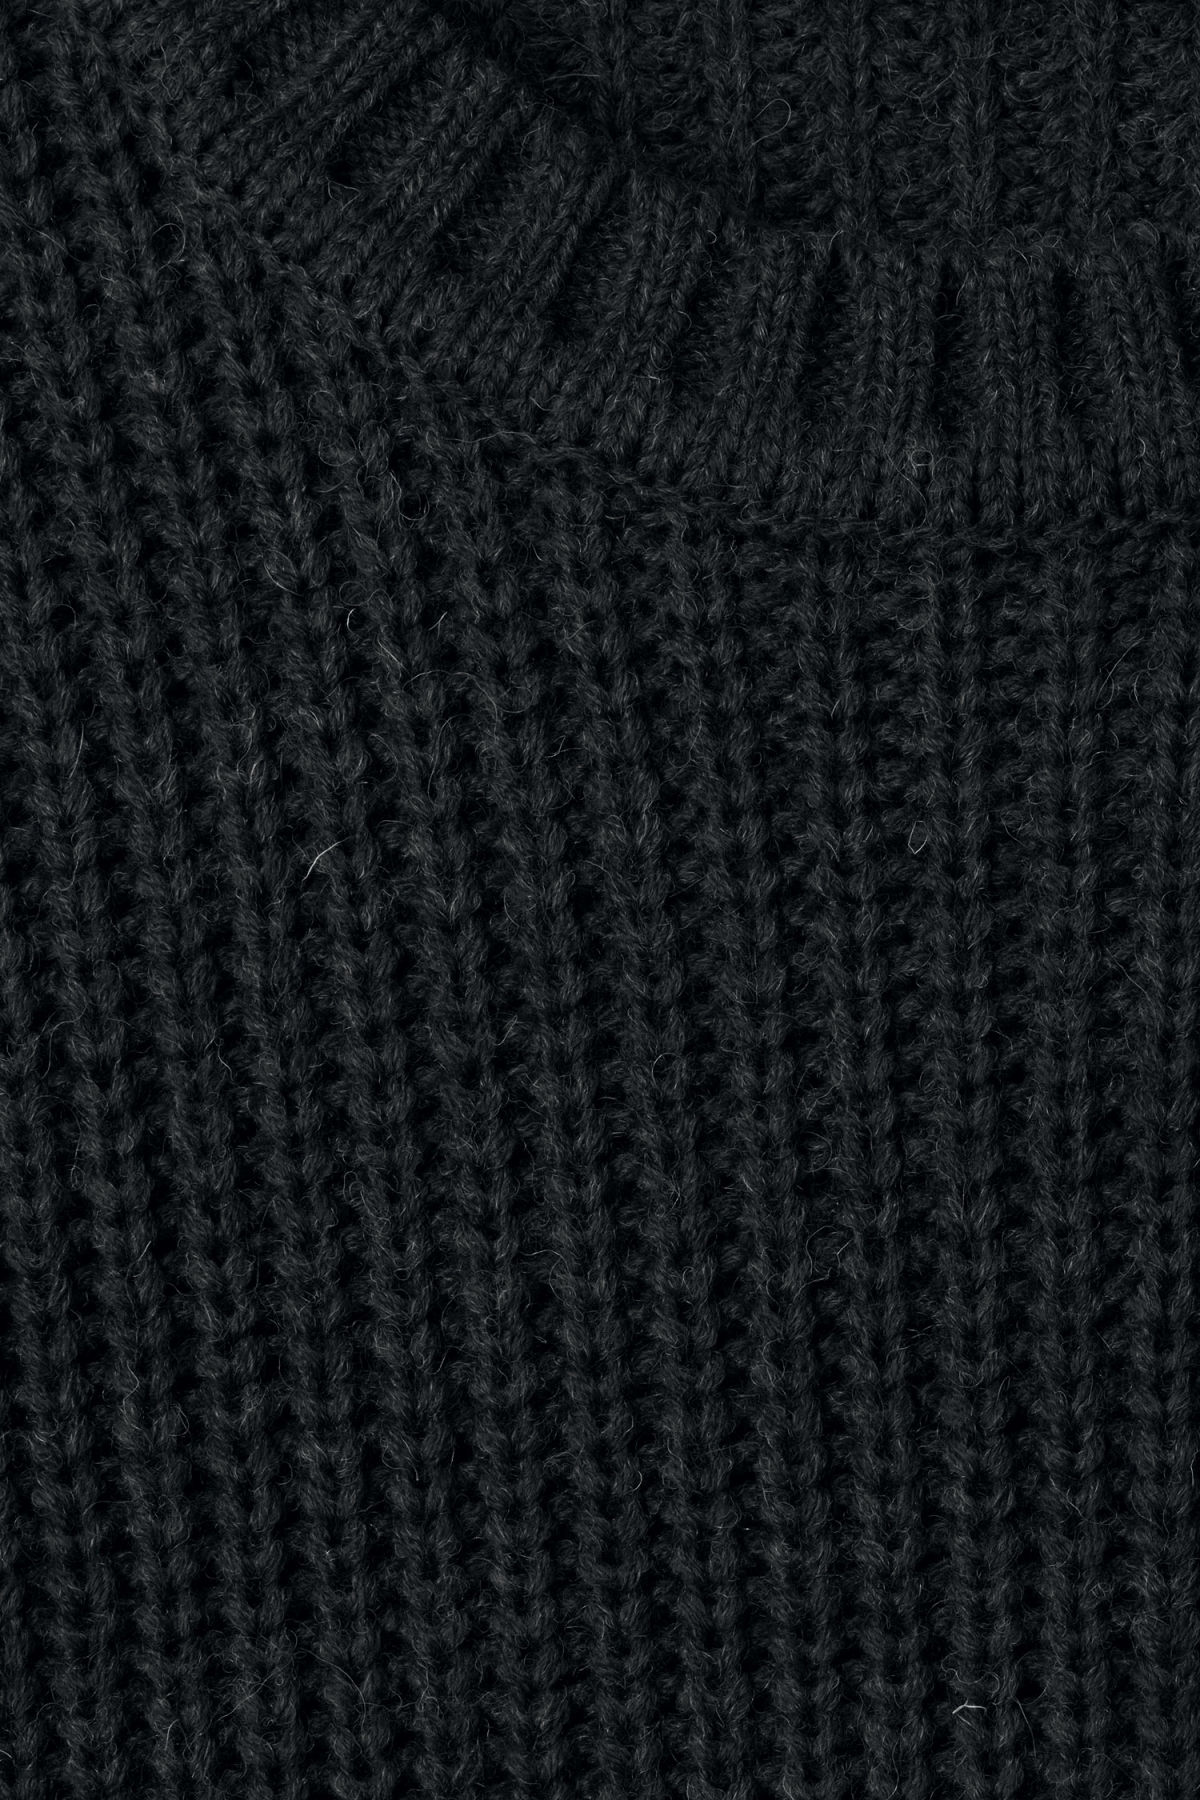 Detailed image of Weekday dieago sweater in black